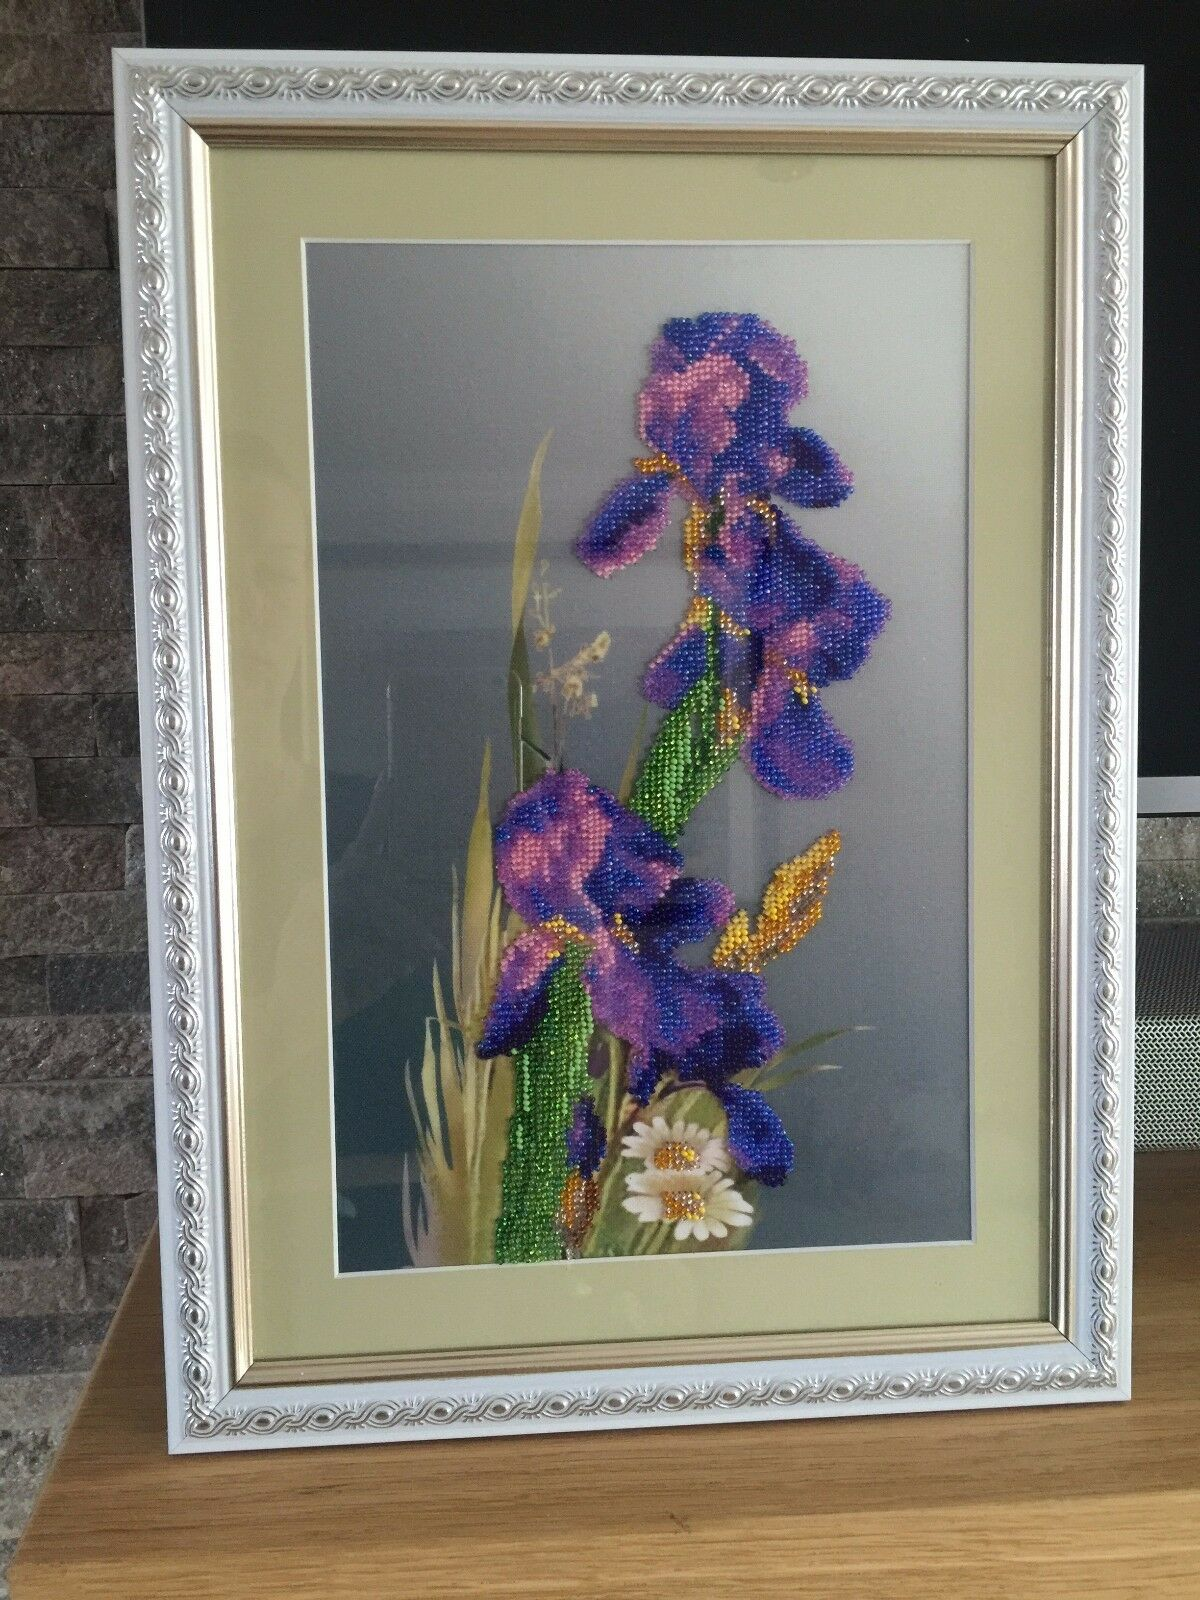 Handmade Embroiderot Beaded Picture of Evening Irises, perfect family gift